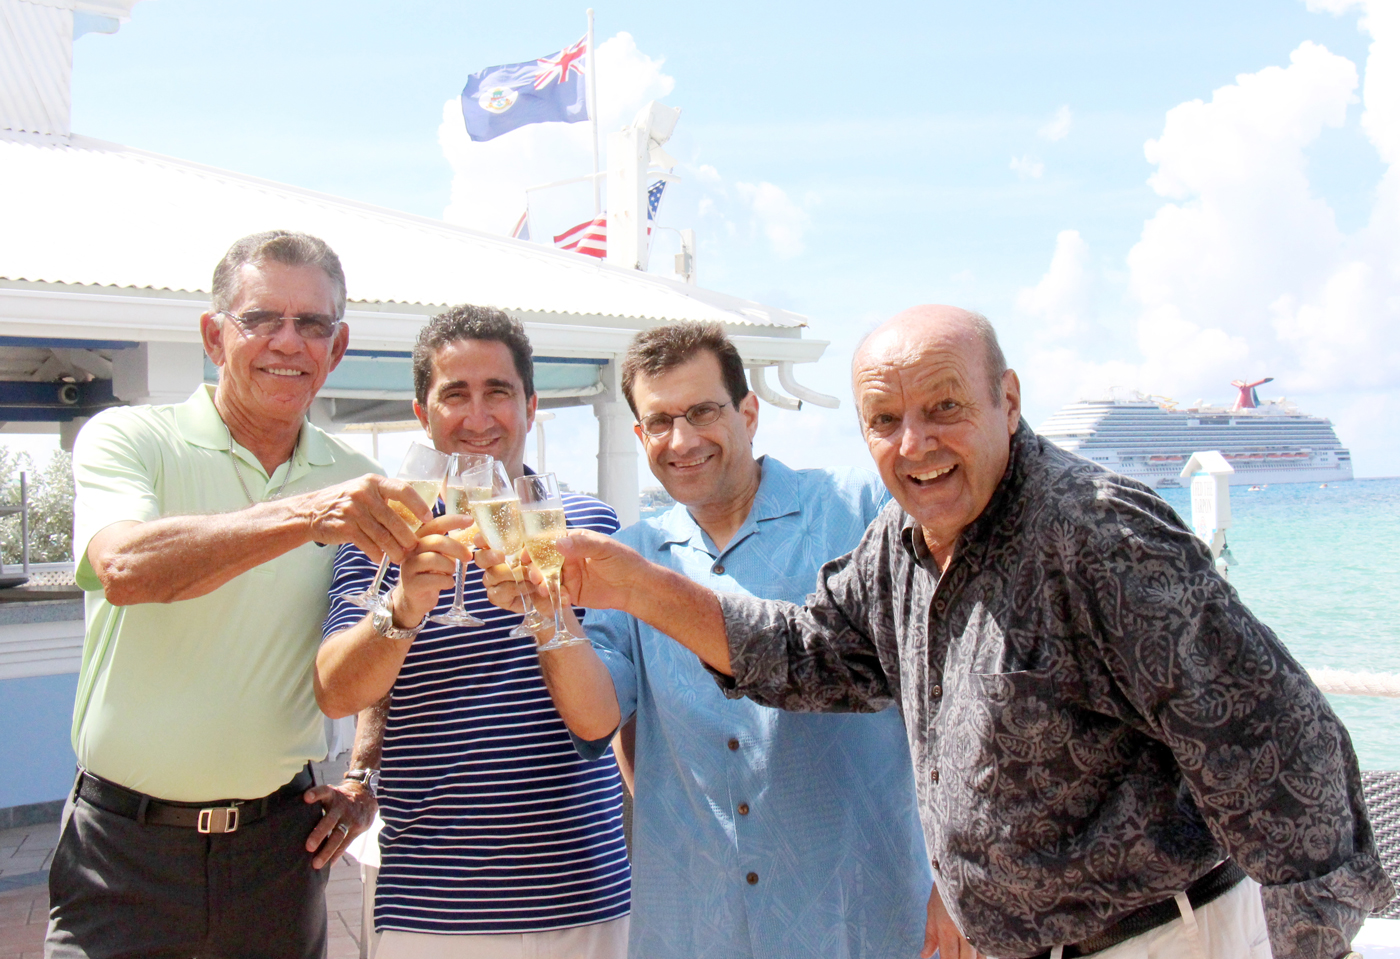 Naul Bodden, Luciano De Riso, Reno Mancini and Clemens Guettler toast the sale of The Wharf restaurant. – PHOTO: JAMES WHITTAKER